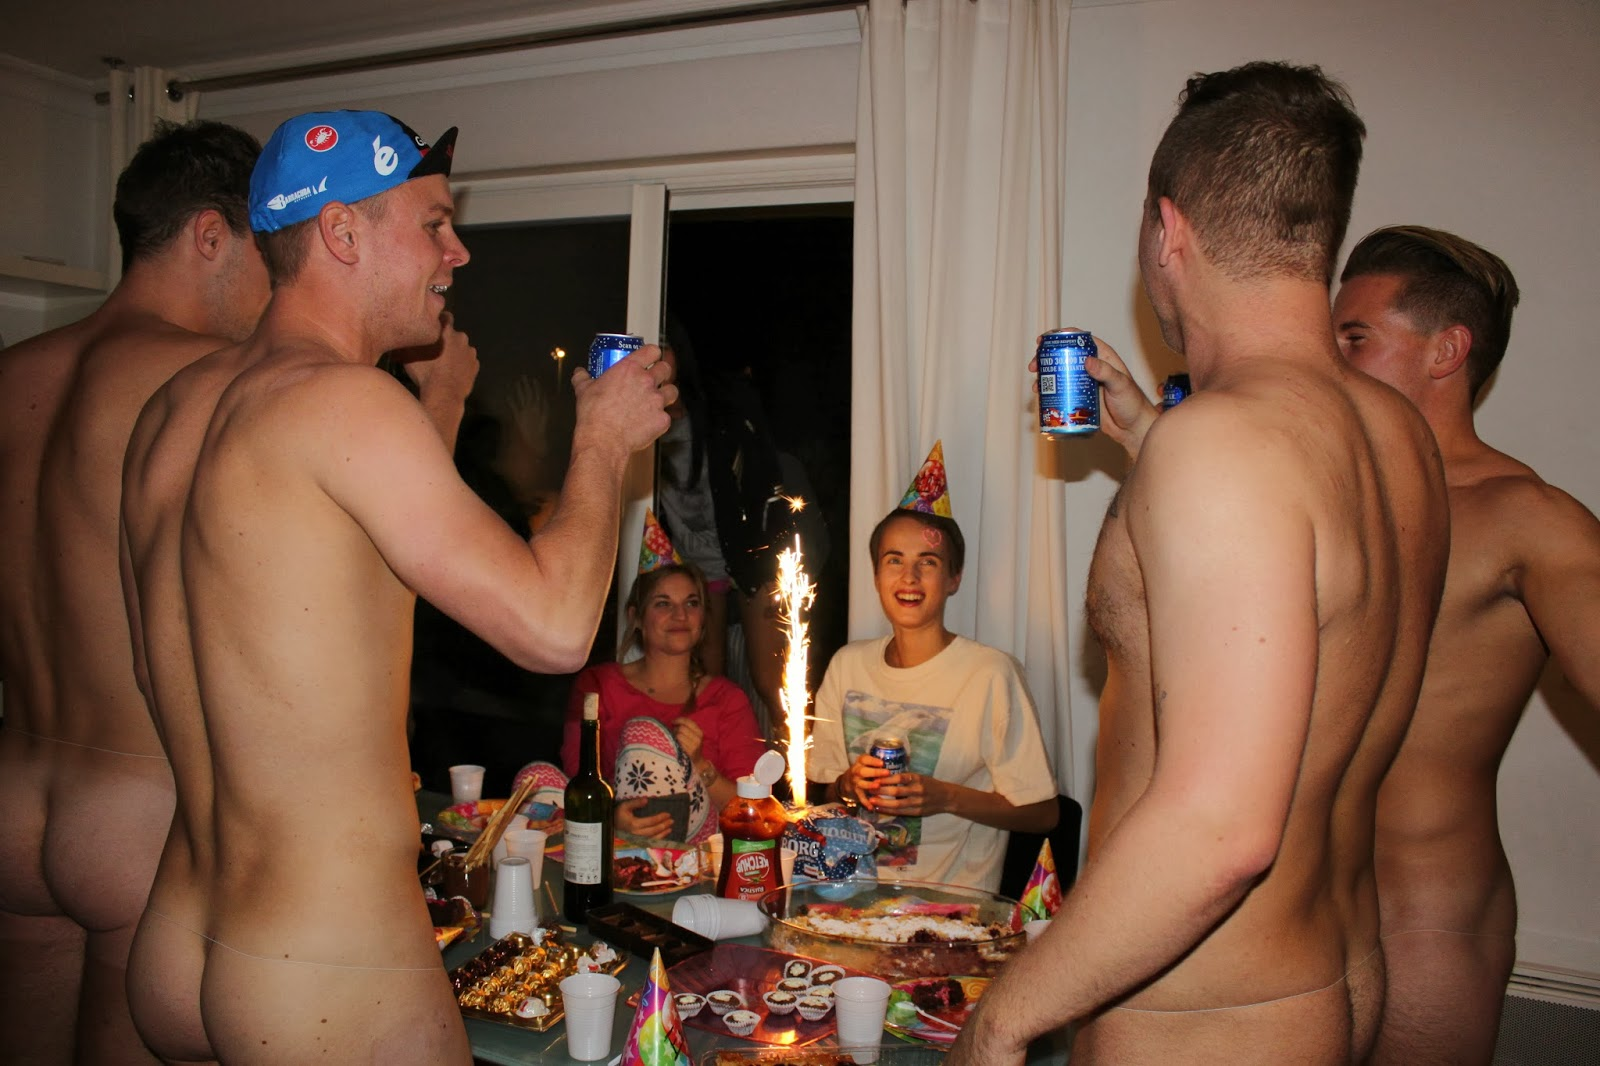 Men of denmark naked congratulate, the